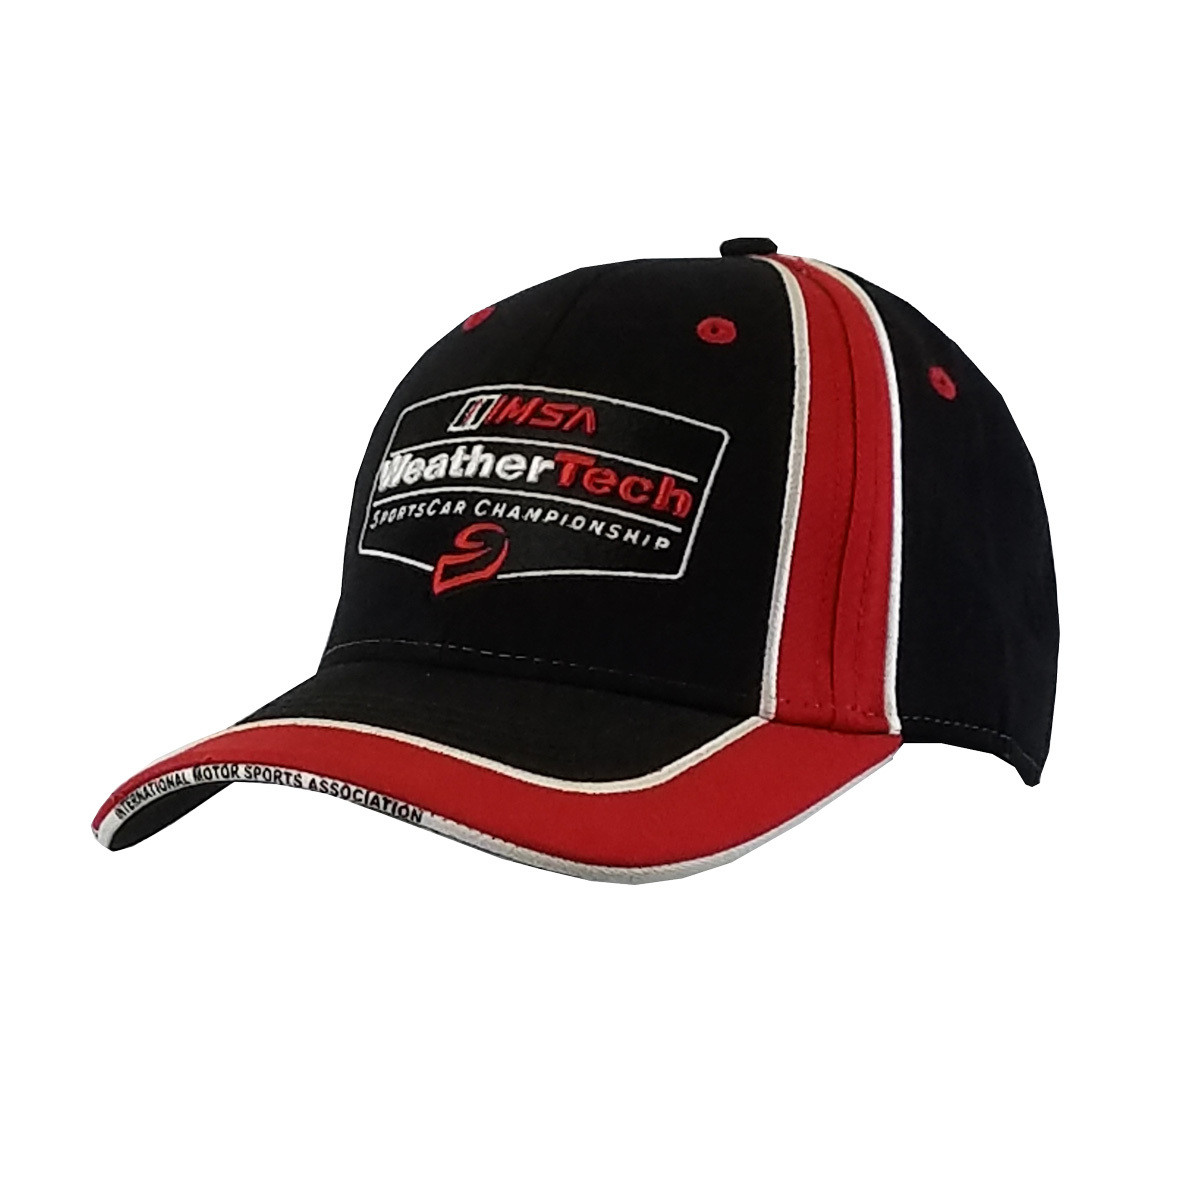 Weathertech 2019 Hat Black/Red